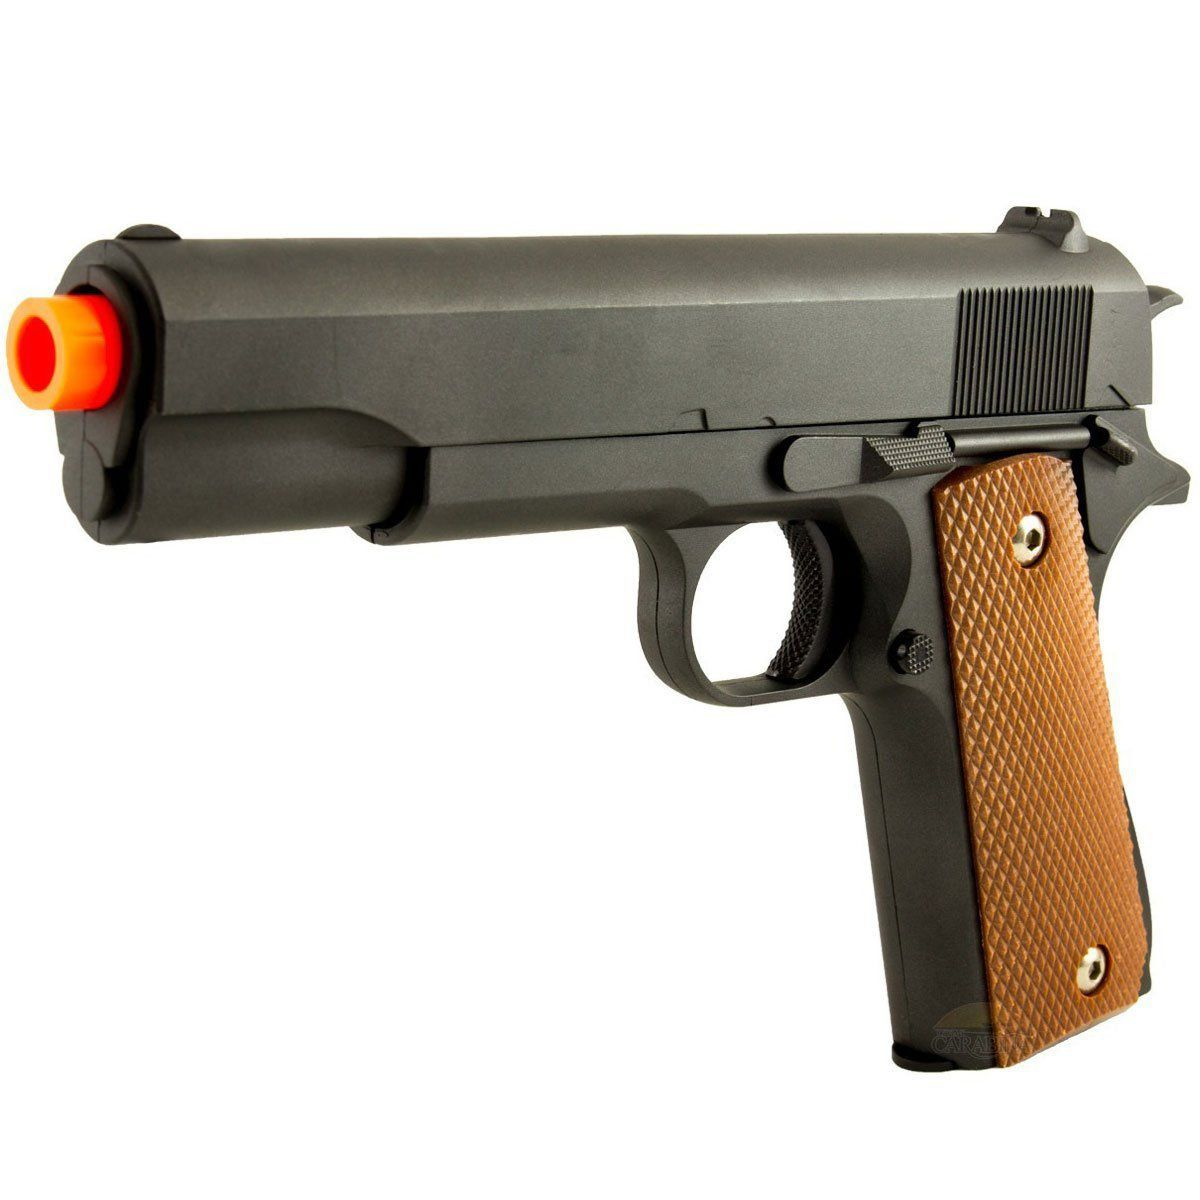 Pistola de Airsoft Galaxy G13 Colt 1911 Full Metal Spring 6mm